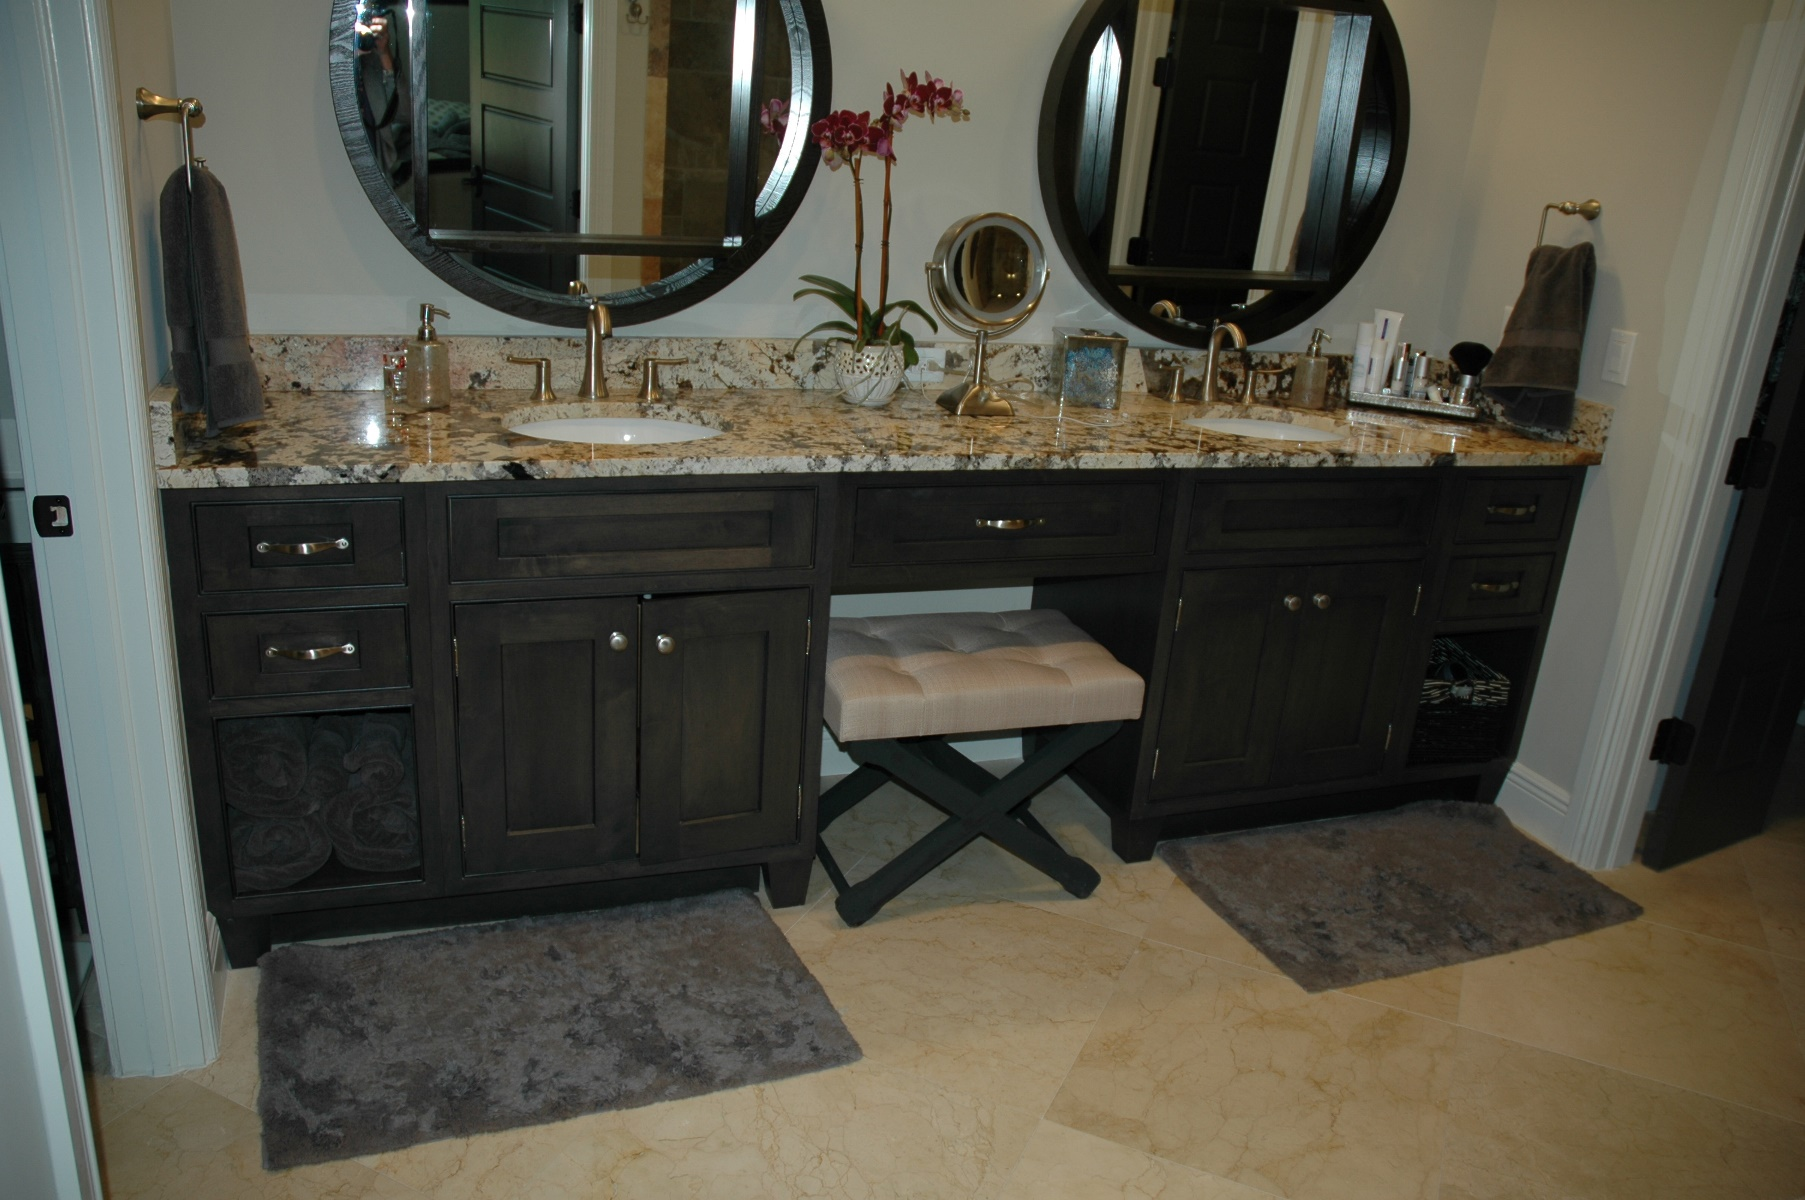 Stuart Palm City Port St Lucie FL Bathroom Renovations Cabinets - Bathroom remodeling port saint lucie fl